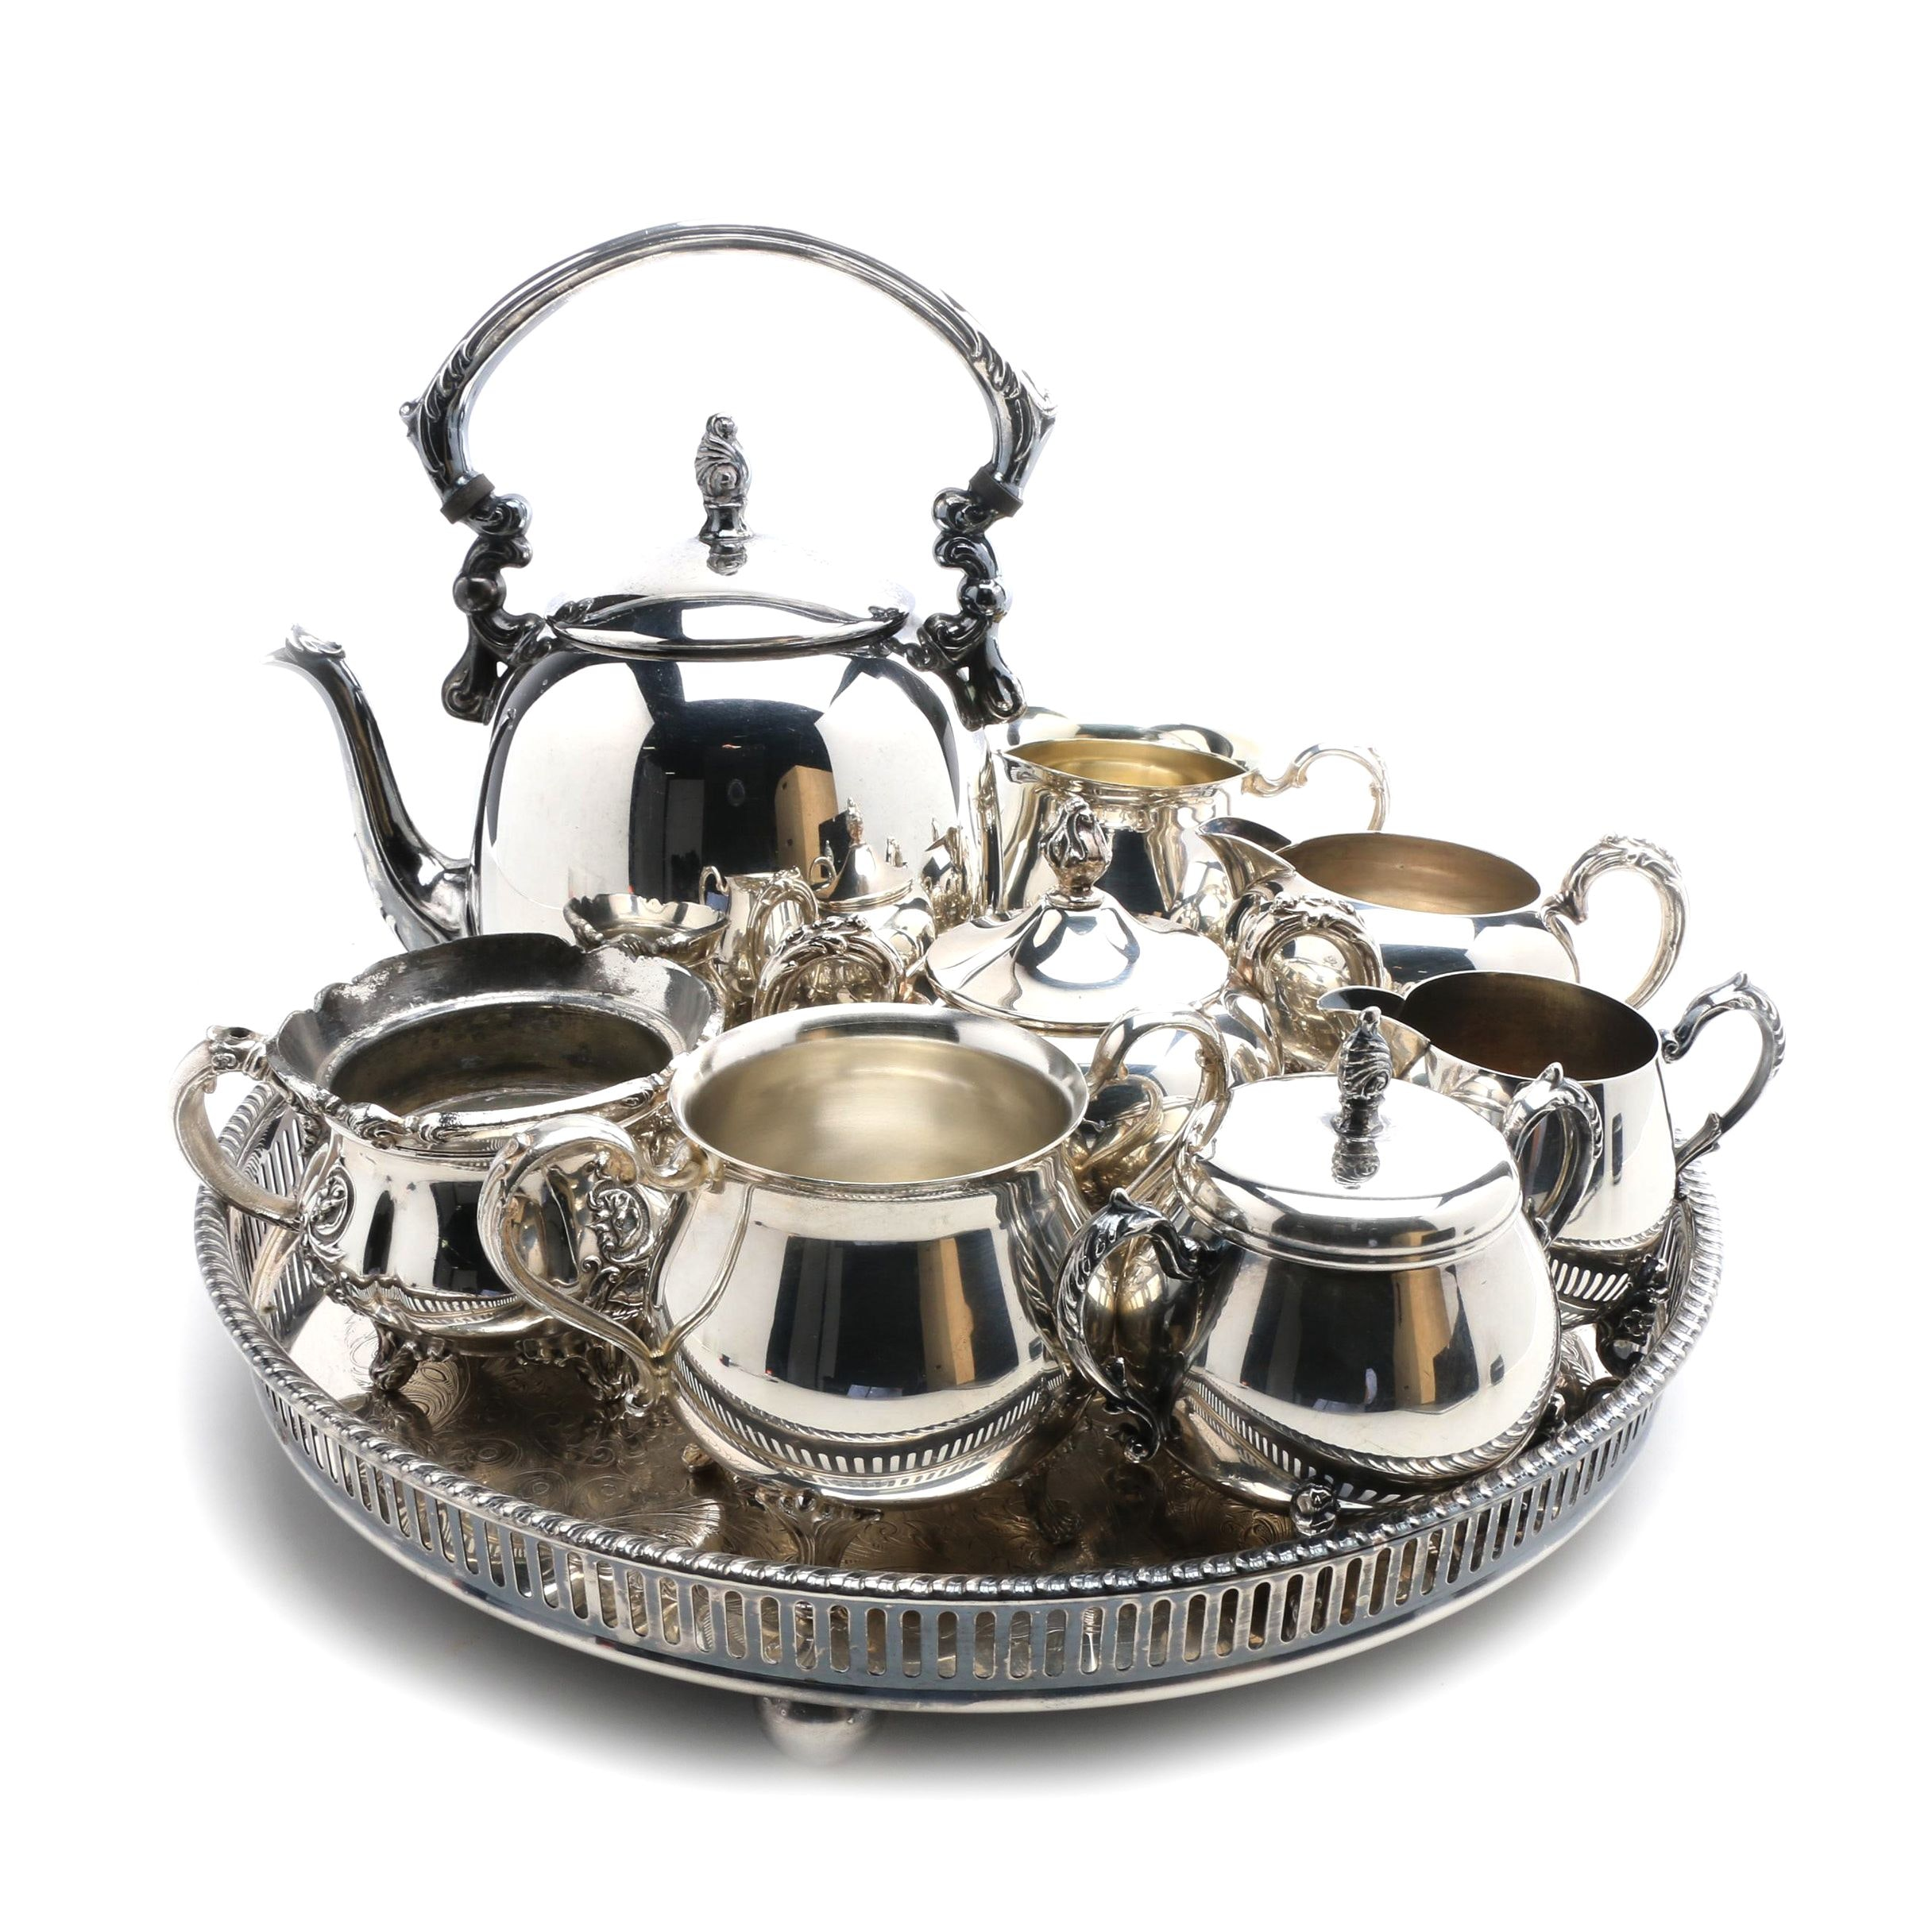 Sheridan Silver Plate Tea Set and Other Silver Plate Serving Items